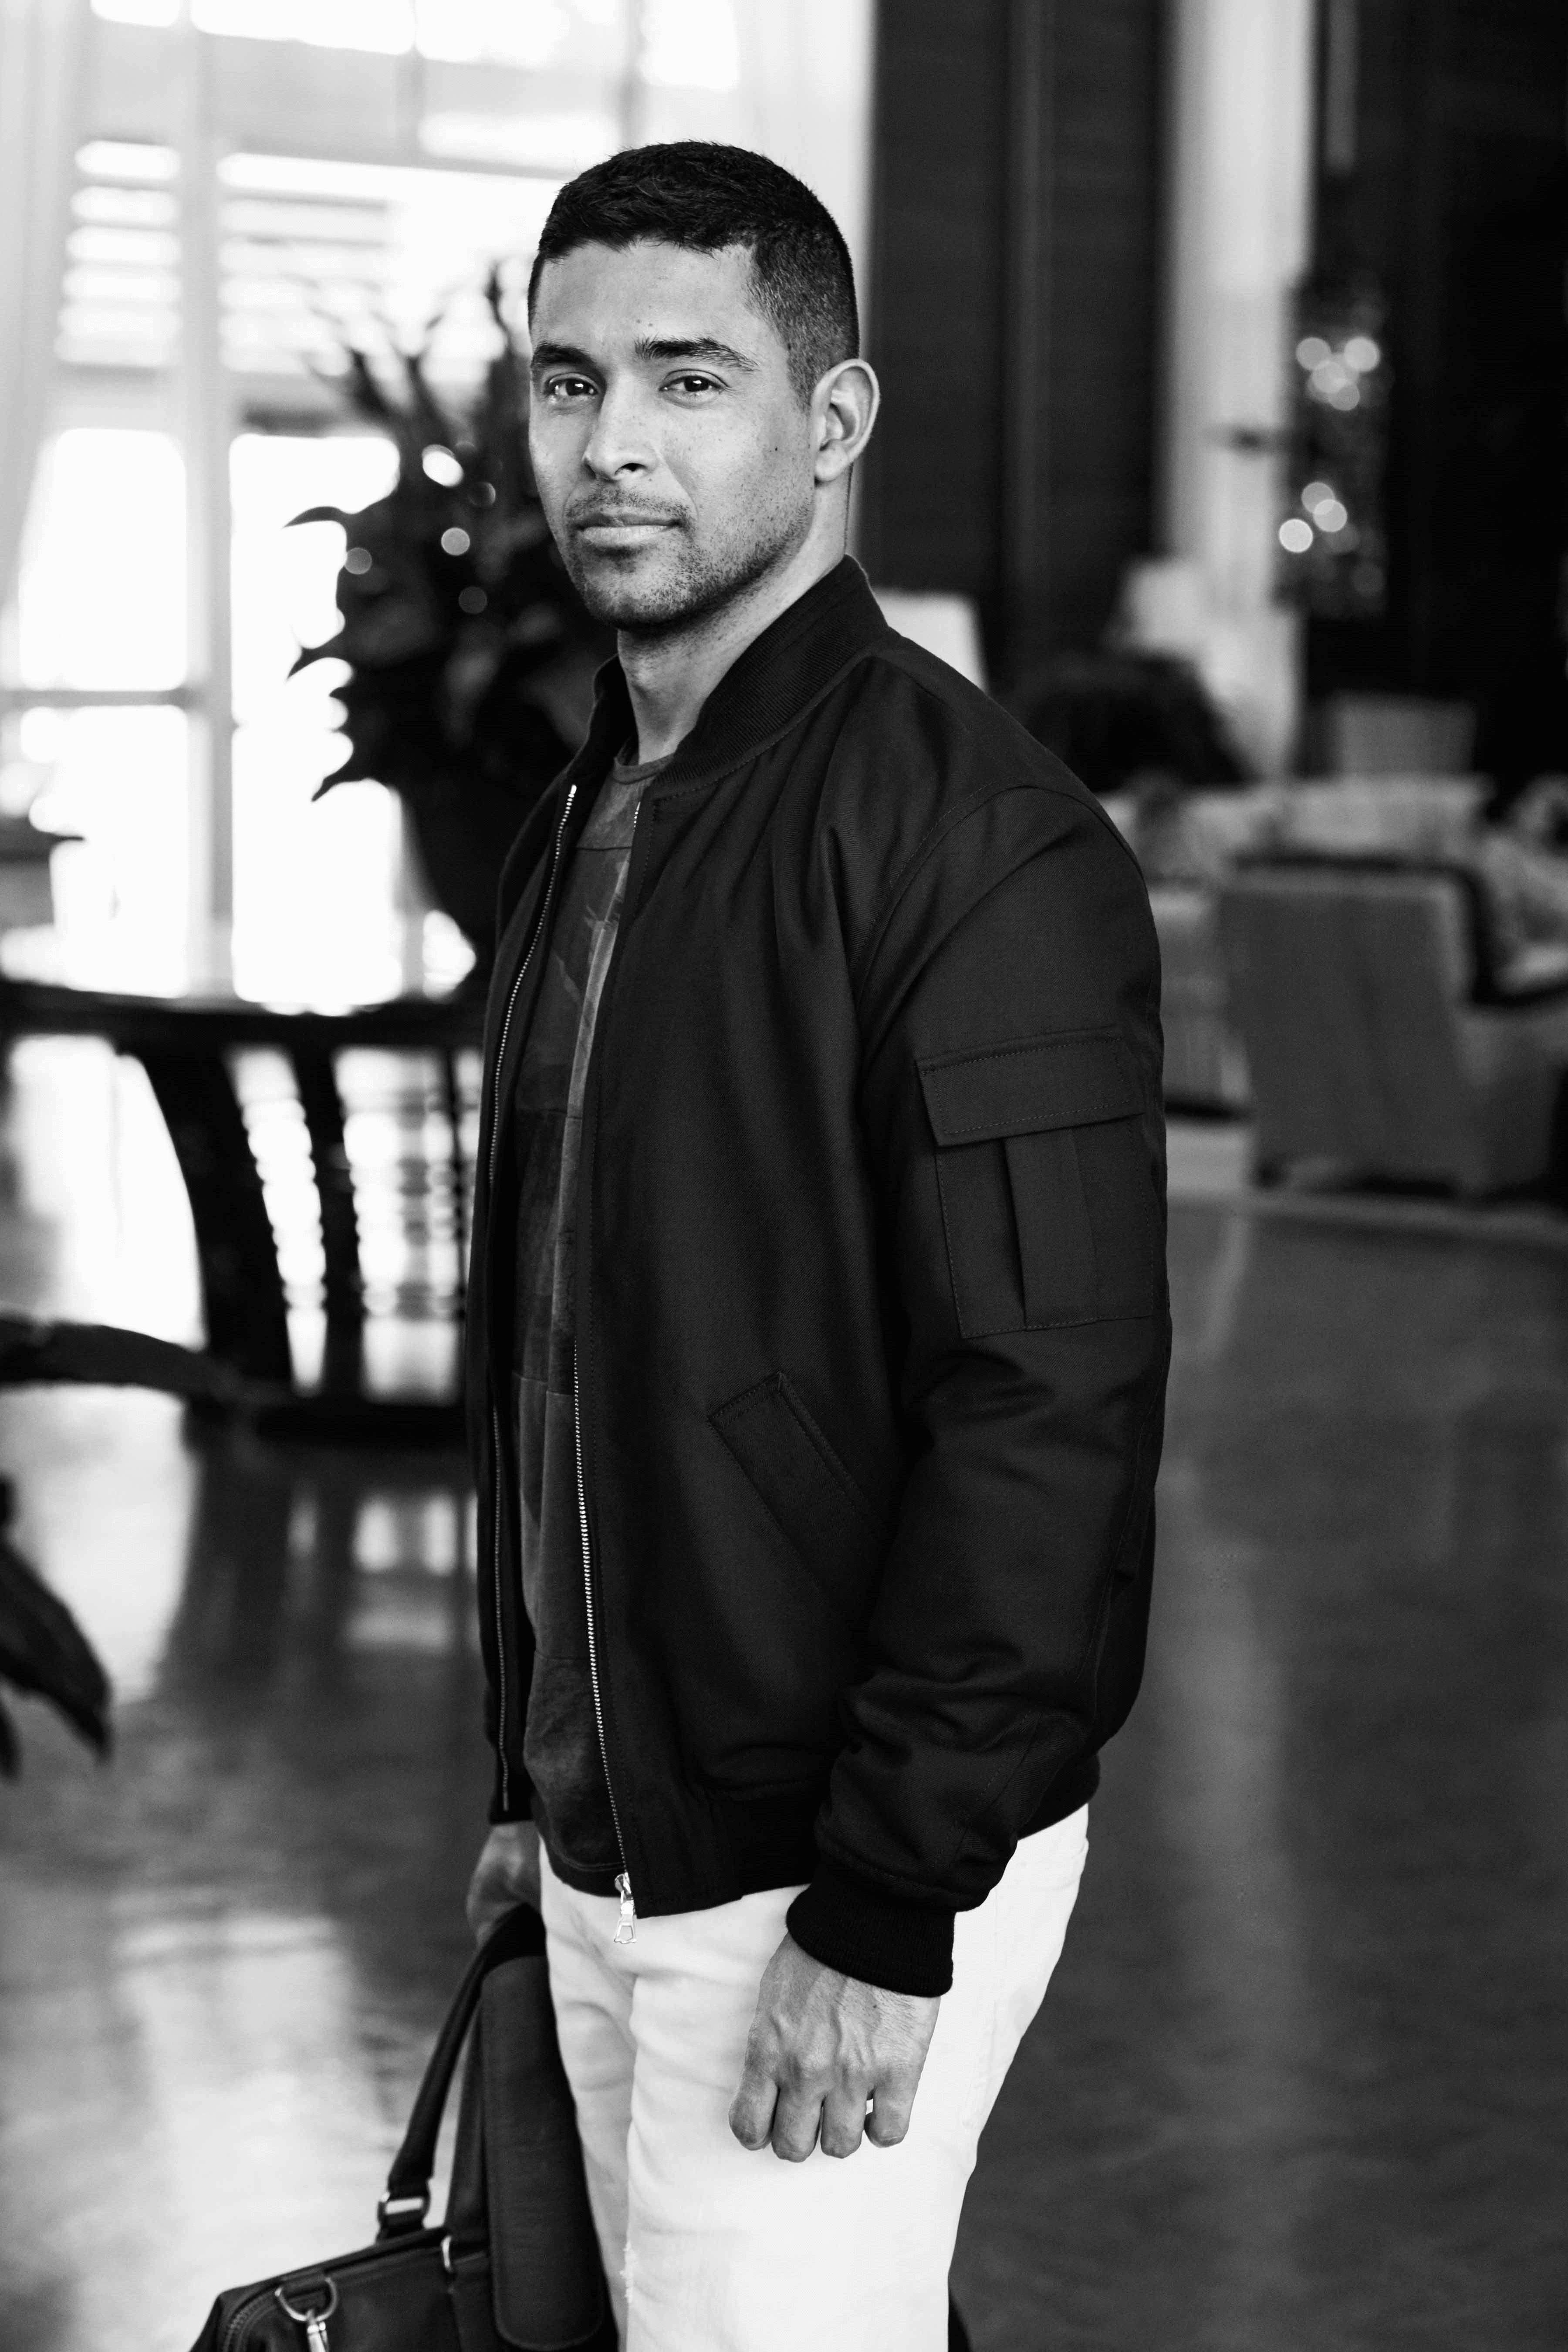 A black and white photo of Wilmer Valderrama with his body turned to the left but looking straight ahead and wearing white pants and a bomber jacket